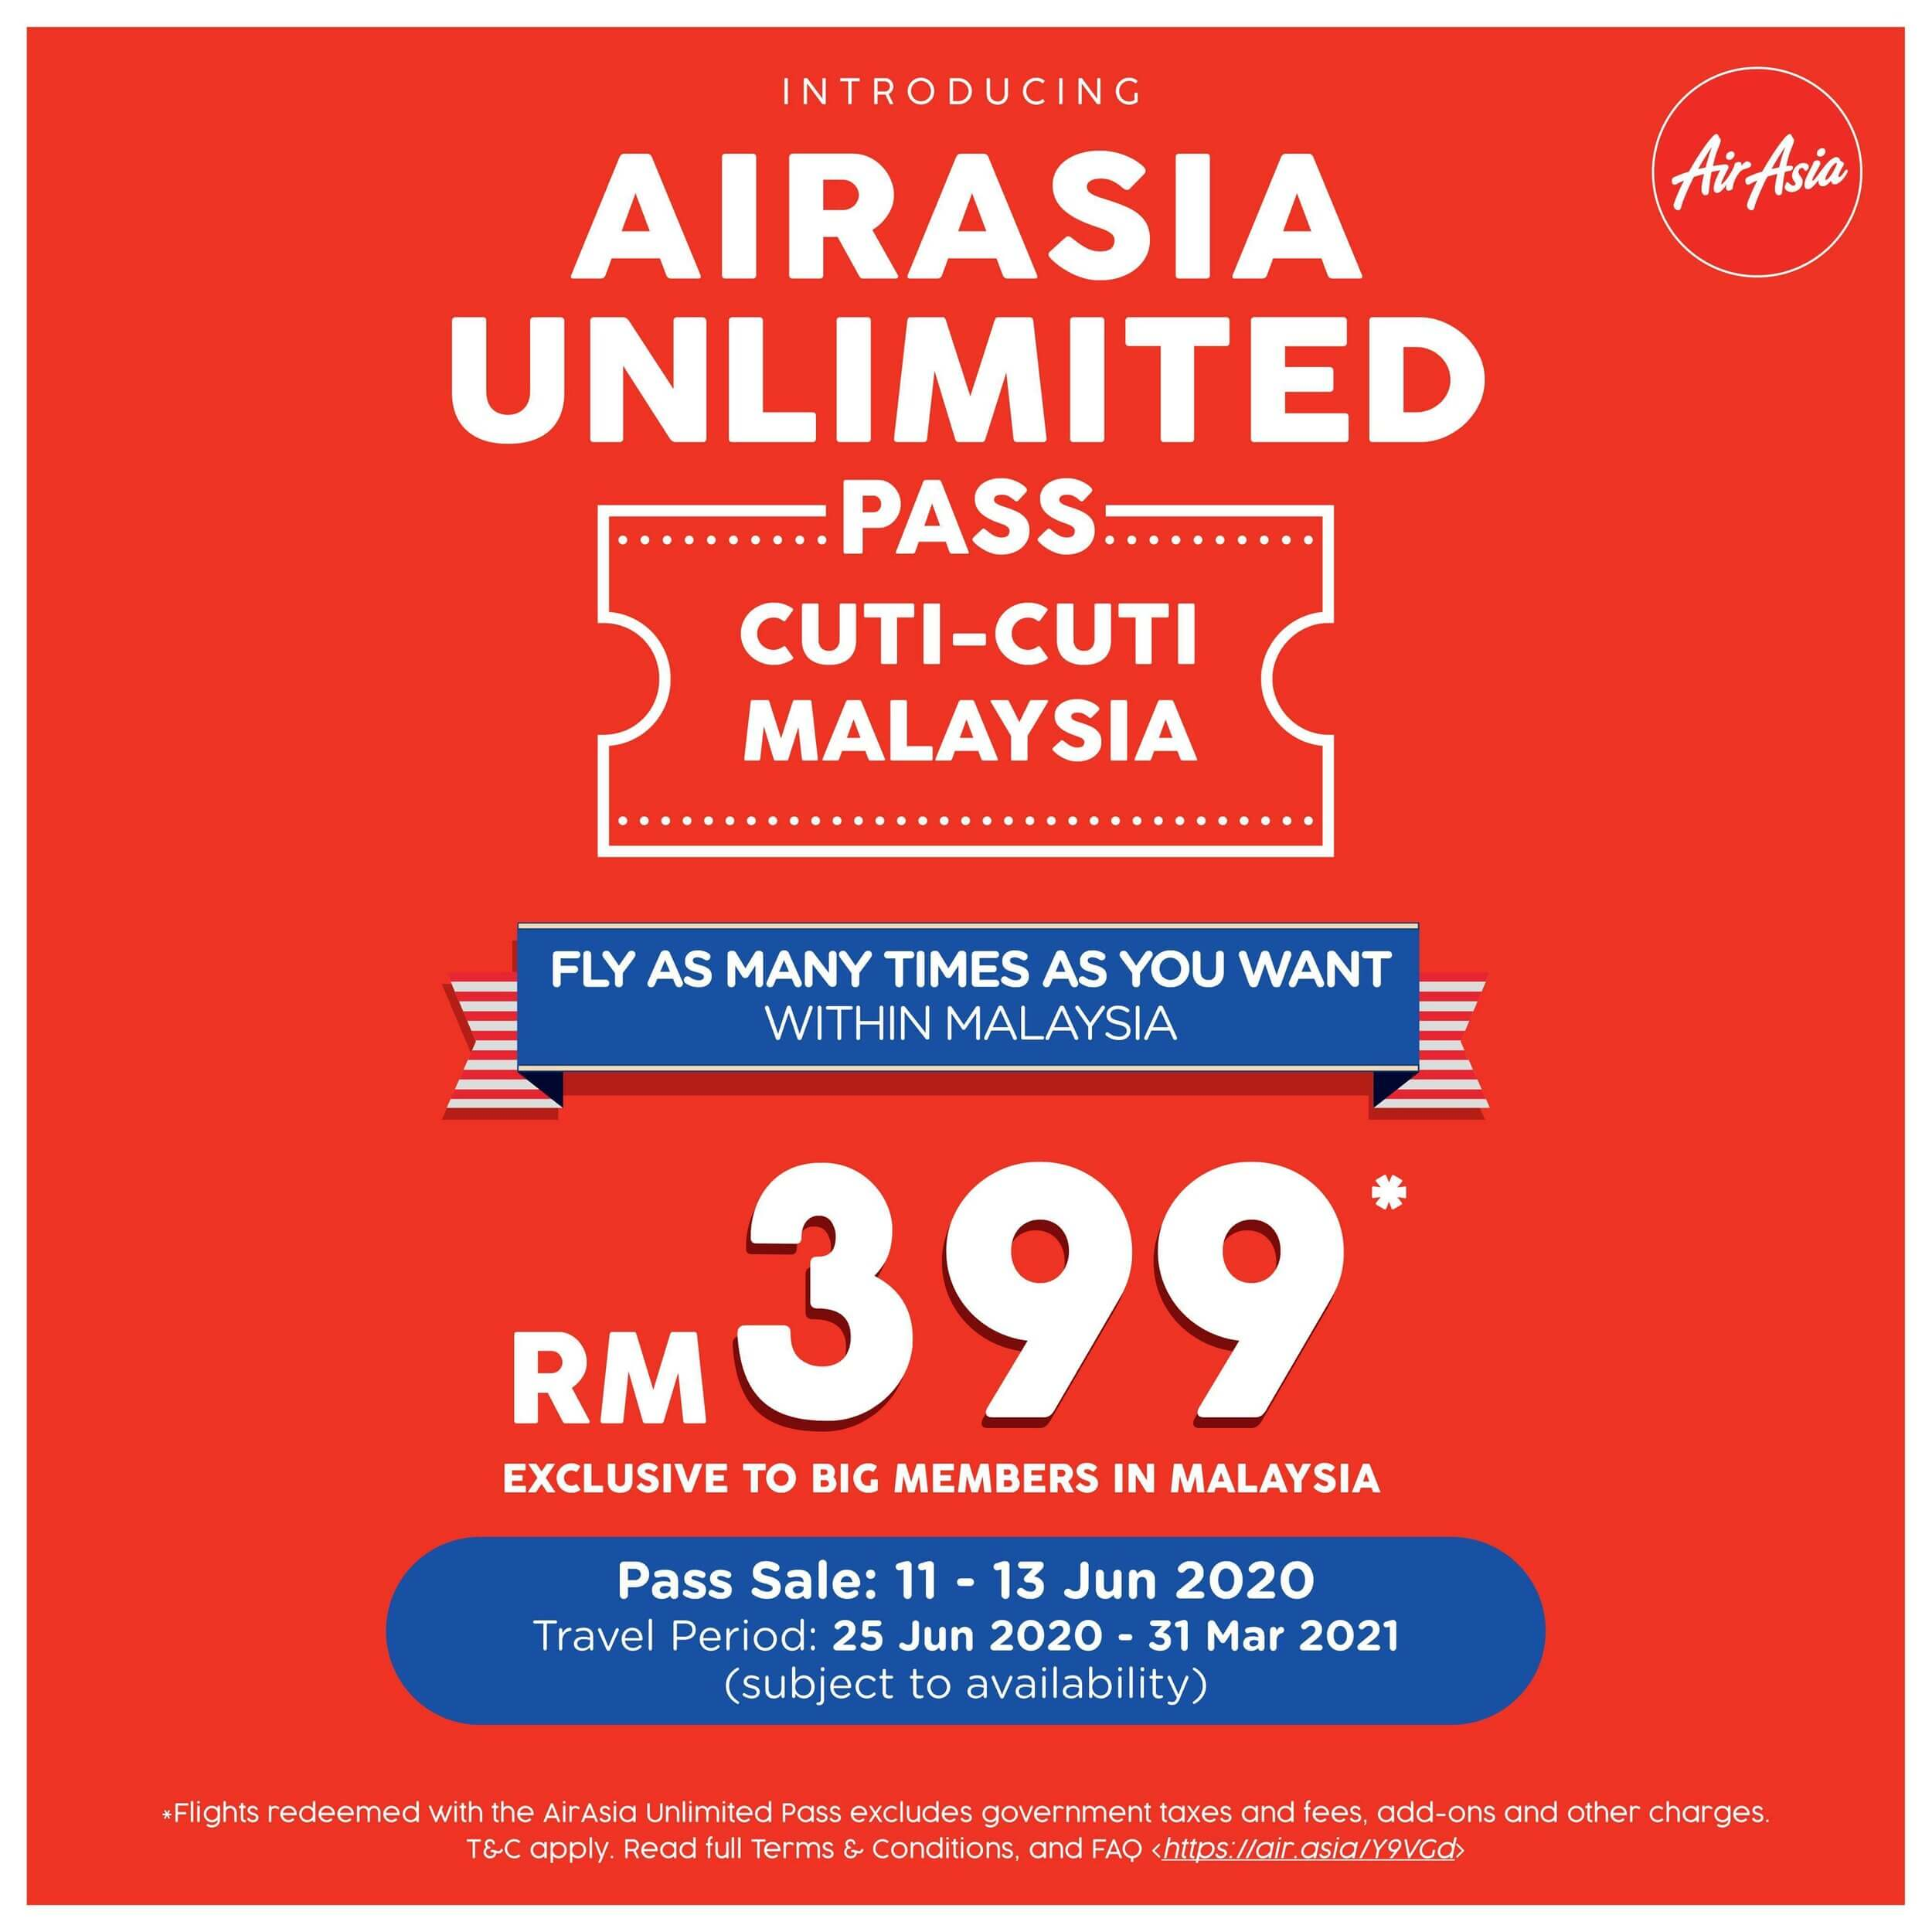 AirAsia Unlimited pass is a great example of disrupting airline digital marketing